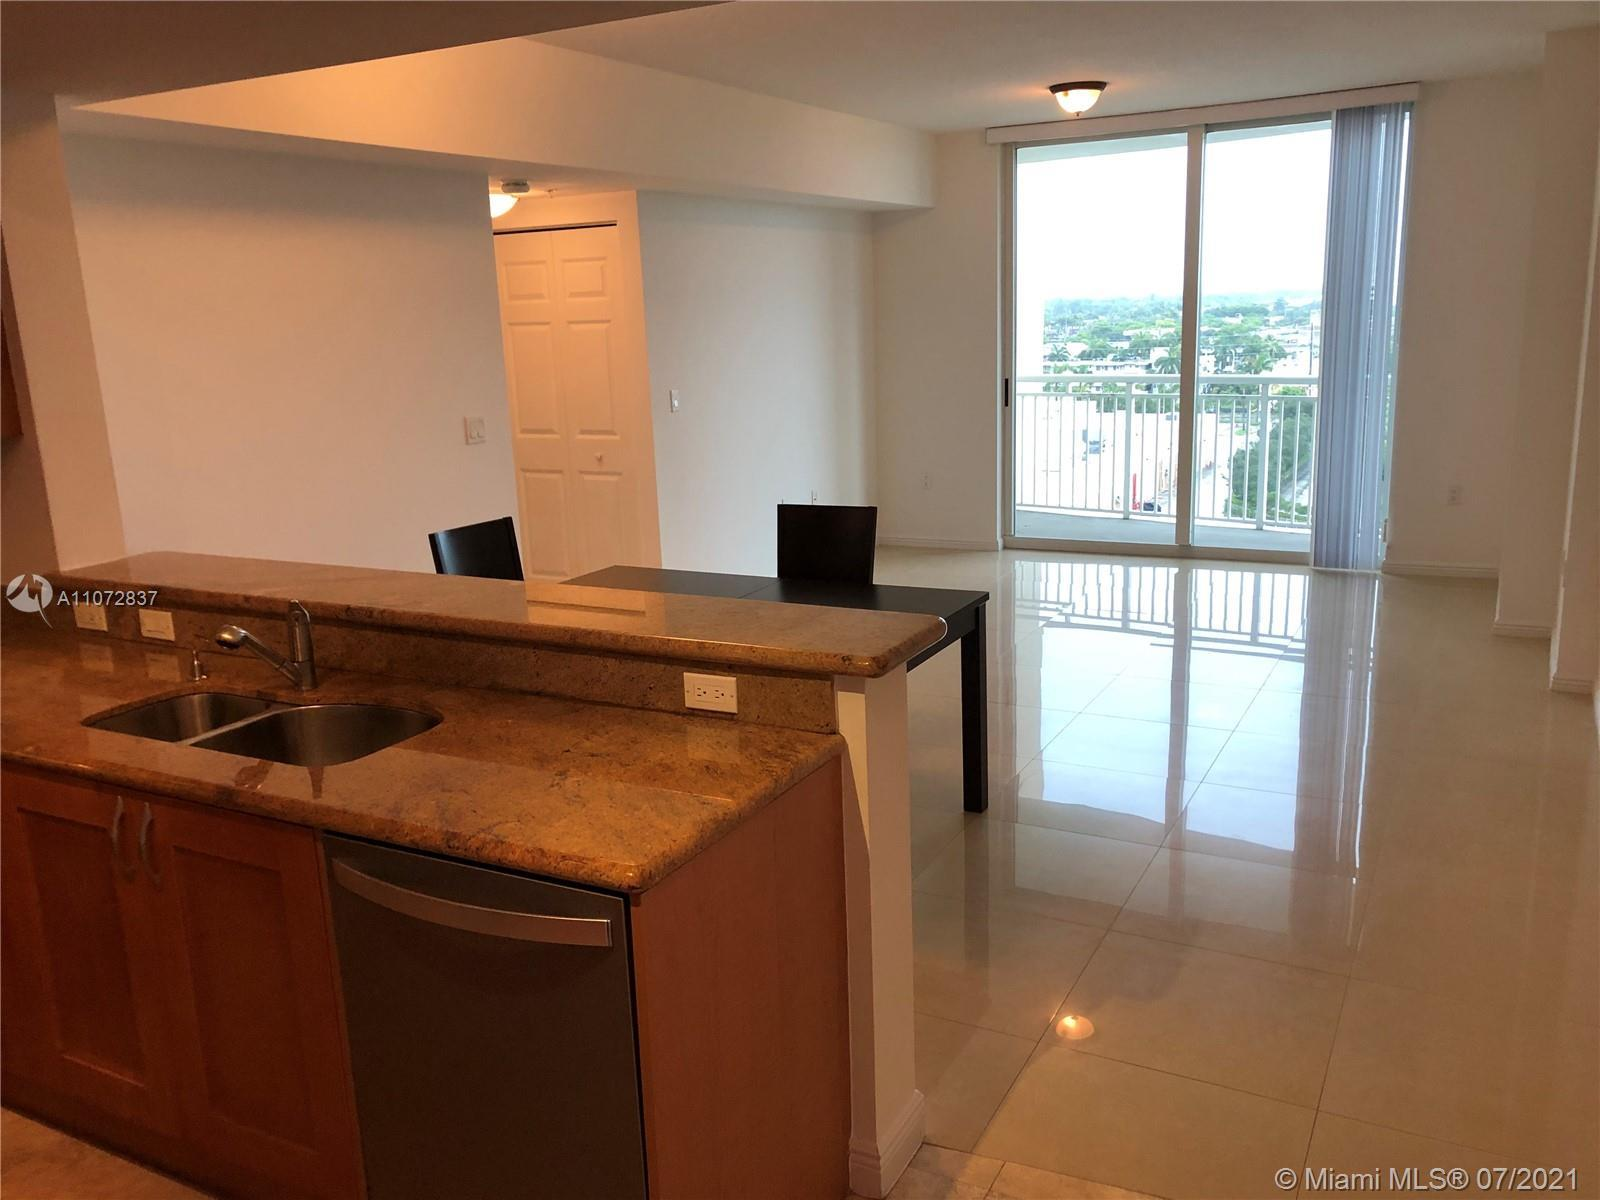 Beautiful Condo in the heart of Hallandale Beach. Apartment has been freshly painted, Tile floors th